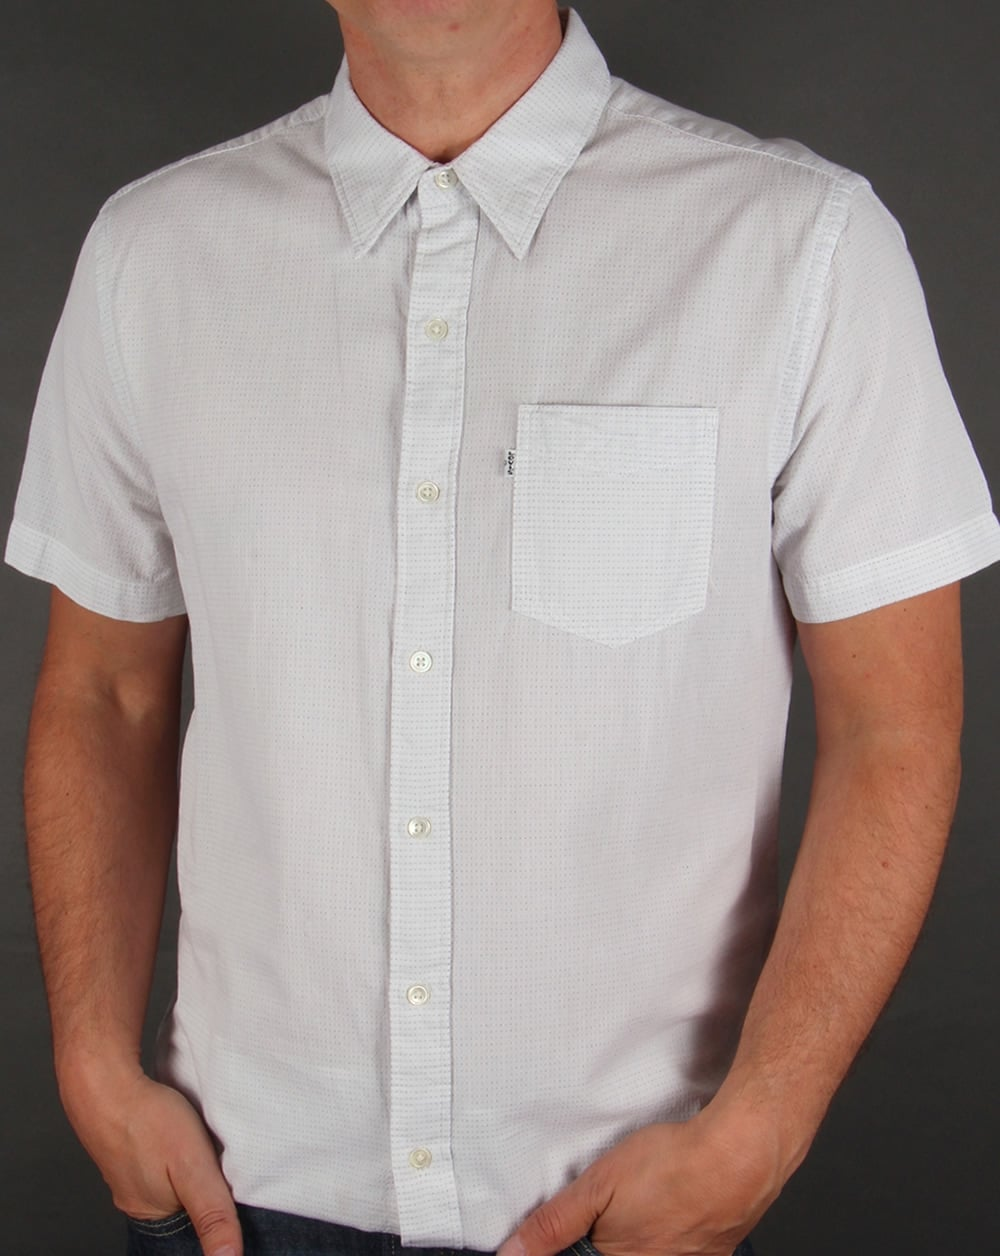 Levis Sunset One Pocket Short Sleeve Shirt Chalky White